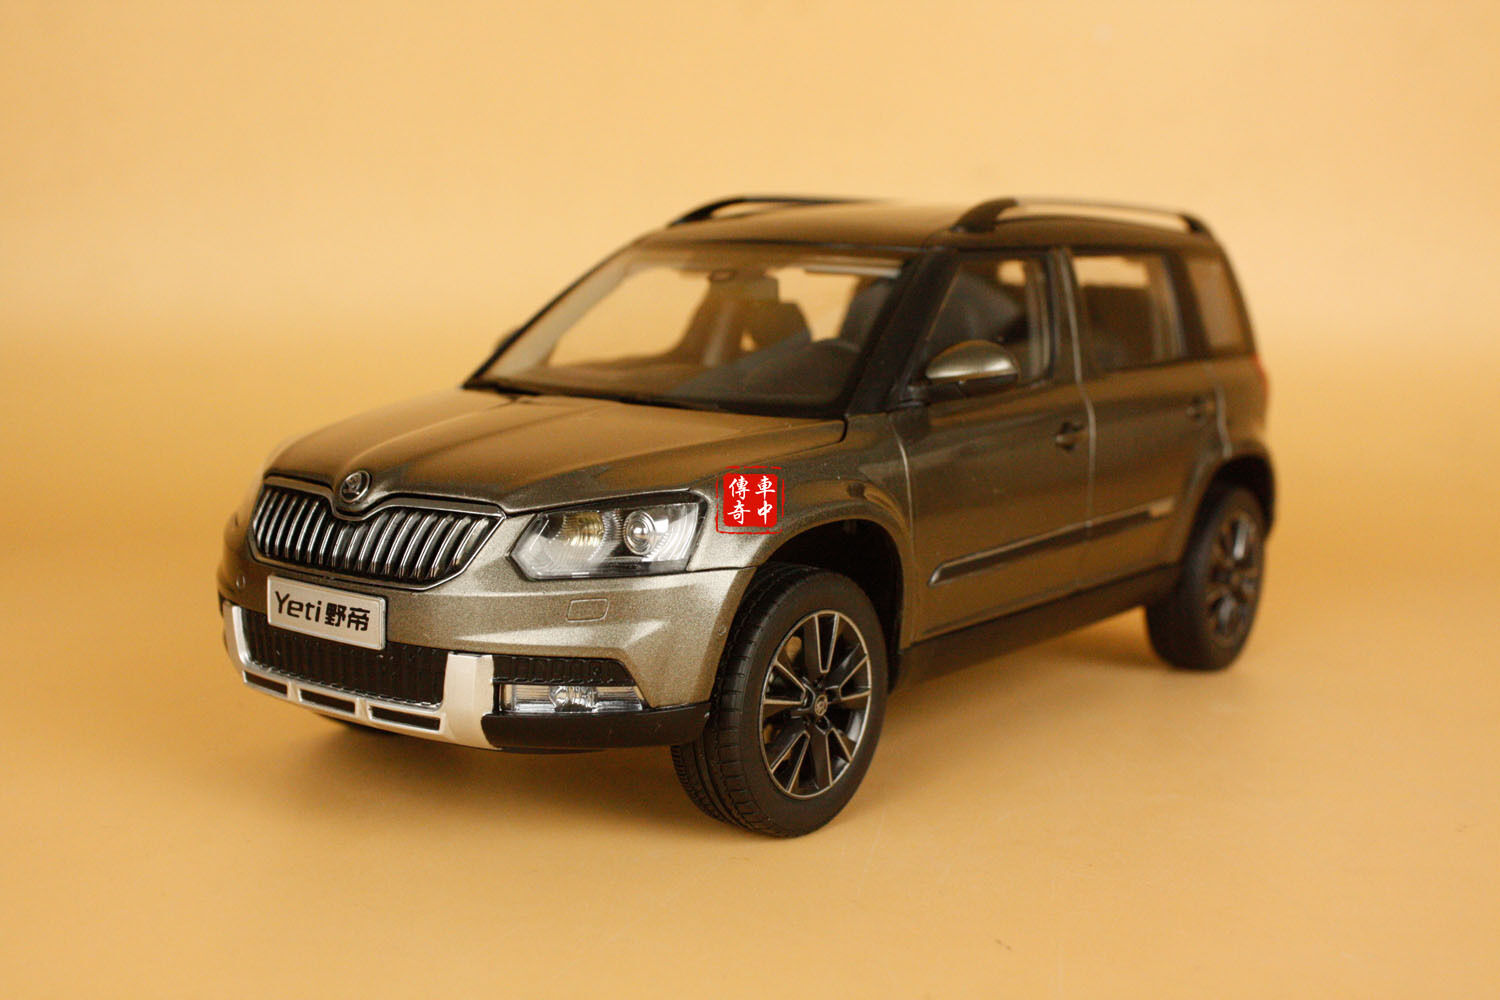 1 18 2013 skoda yeti suv model car dark brown color ebay. Black Bedroom Furniture Sets. Home Design Ideas